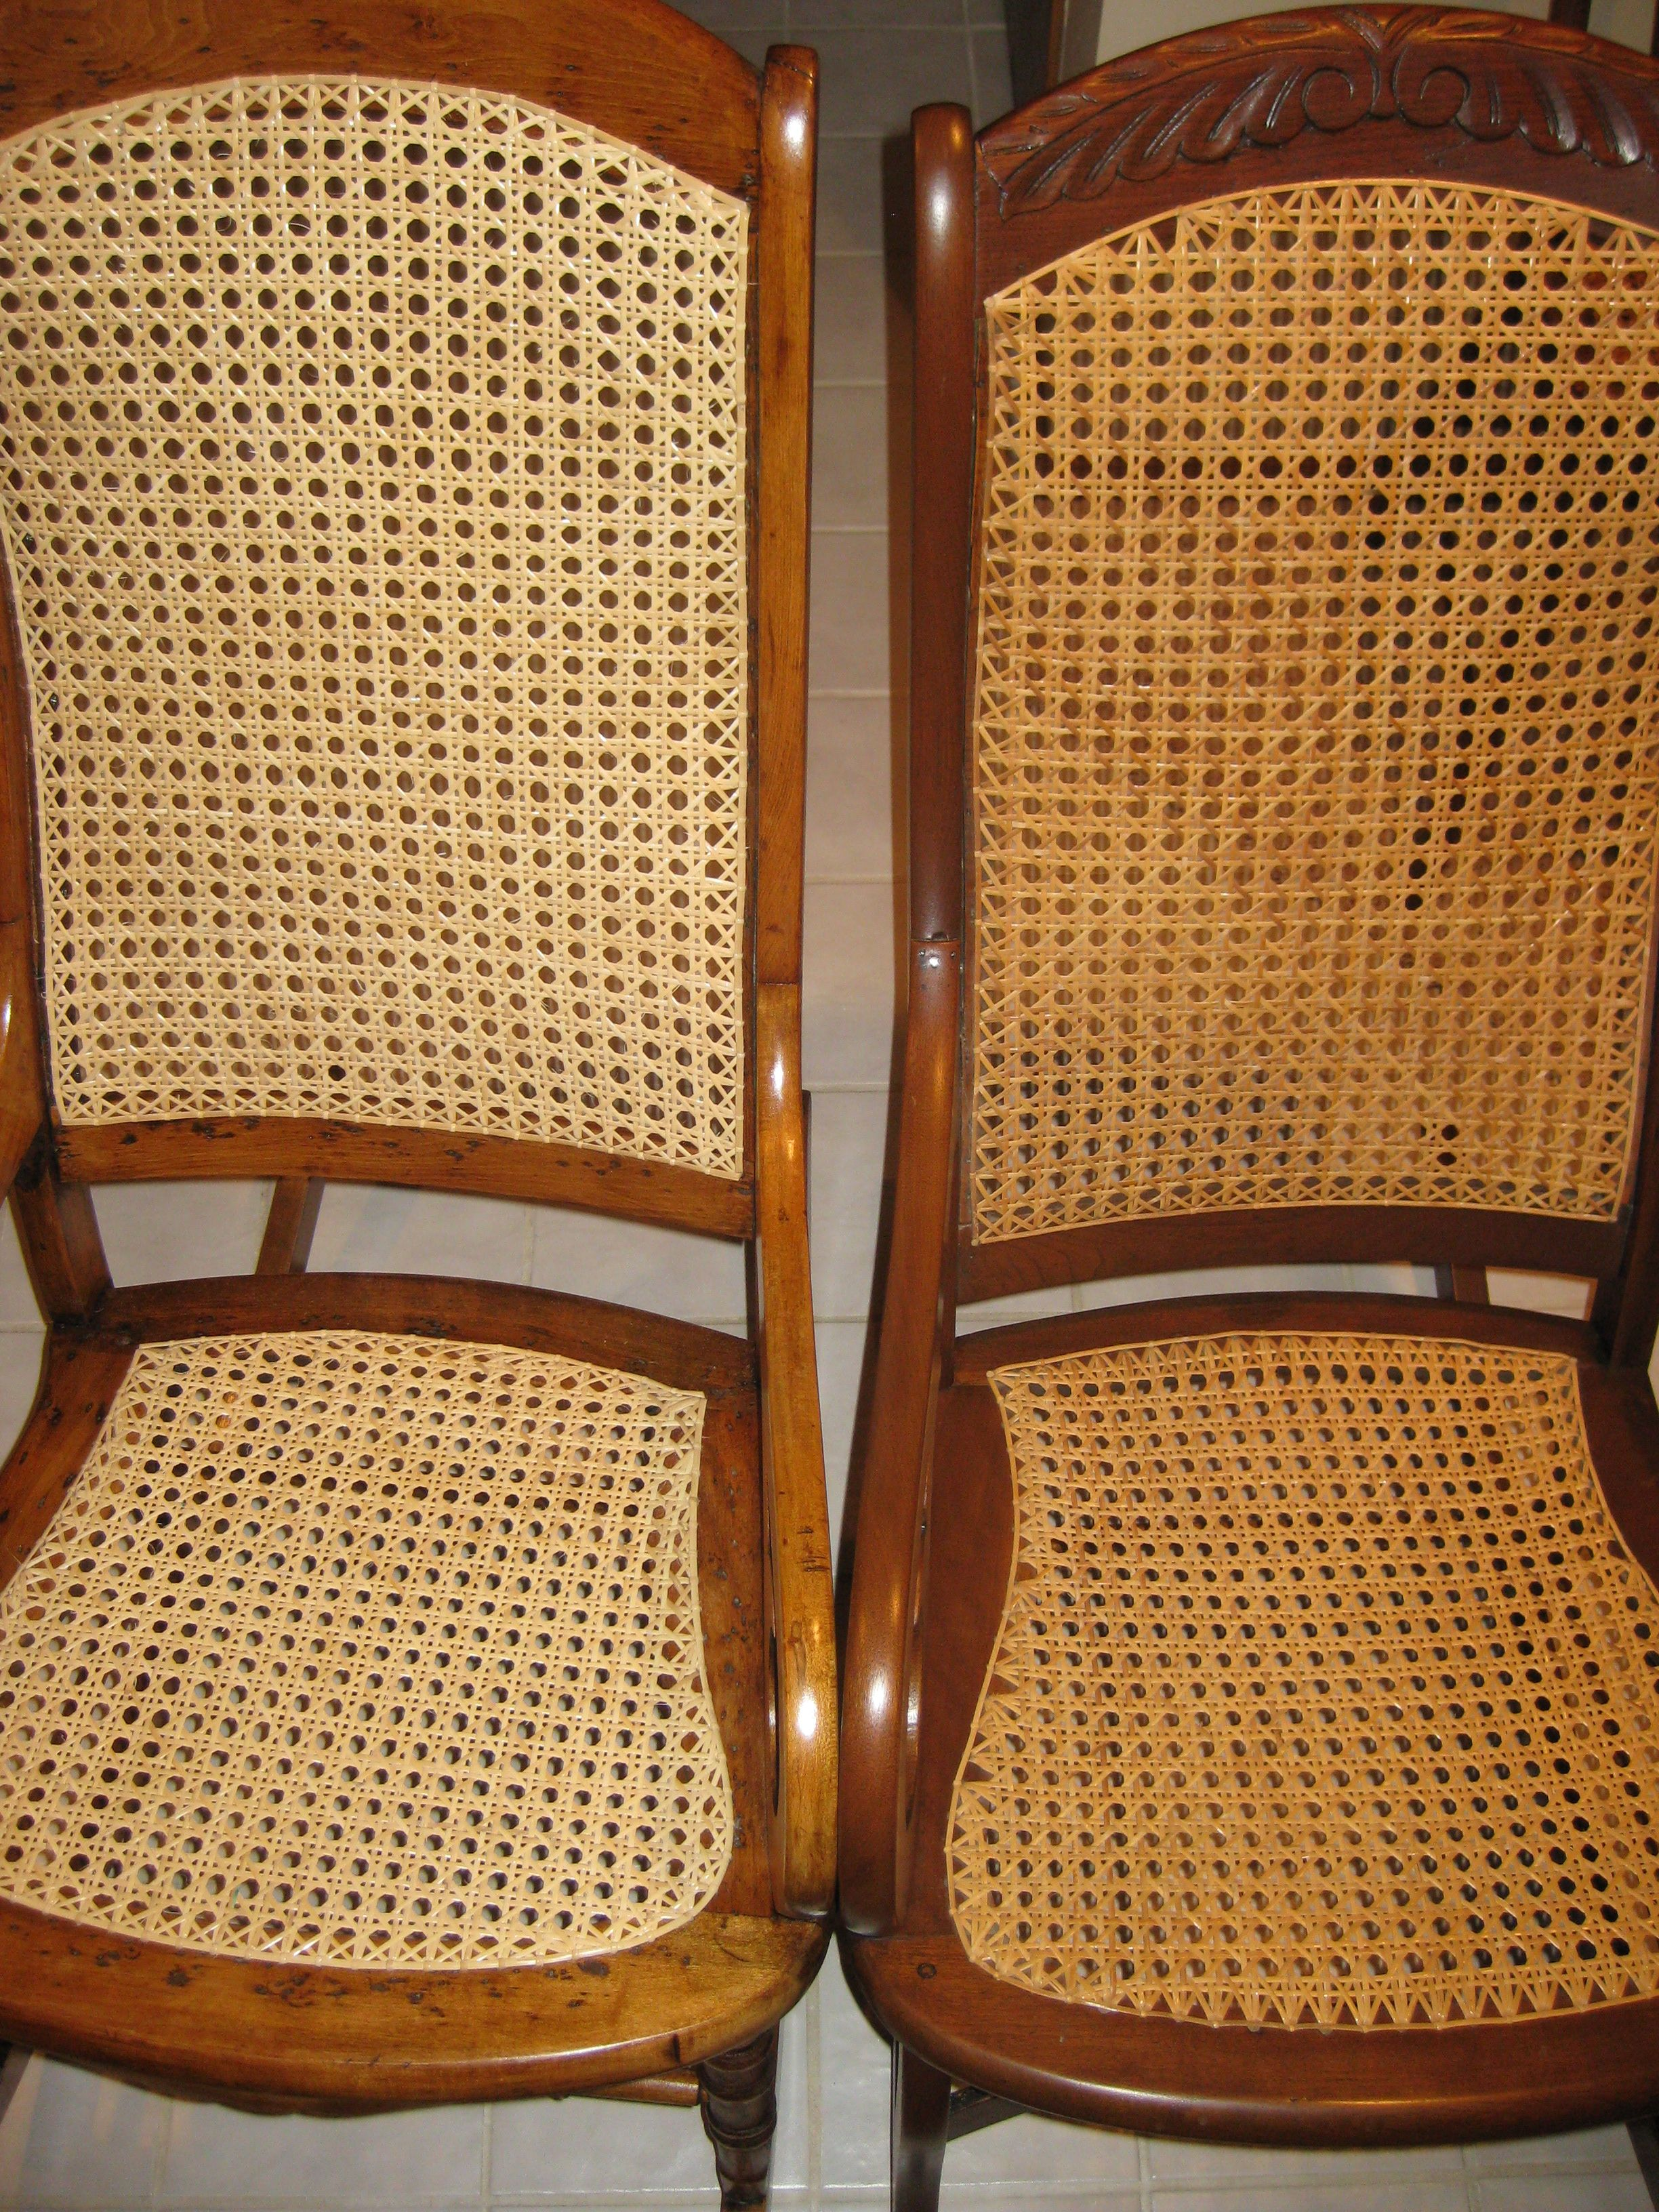 Chair Caning Caning Chair Repair Chair